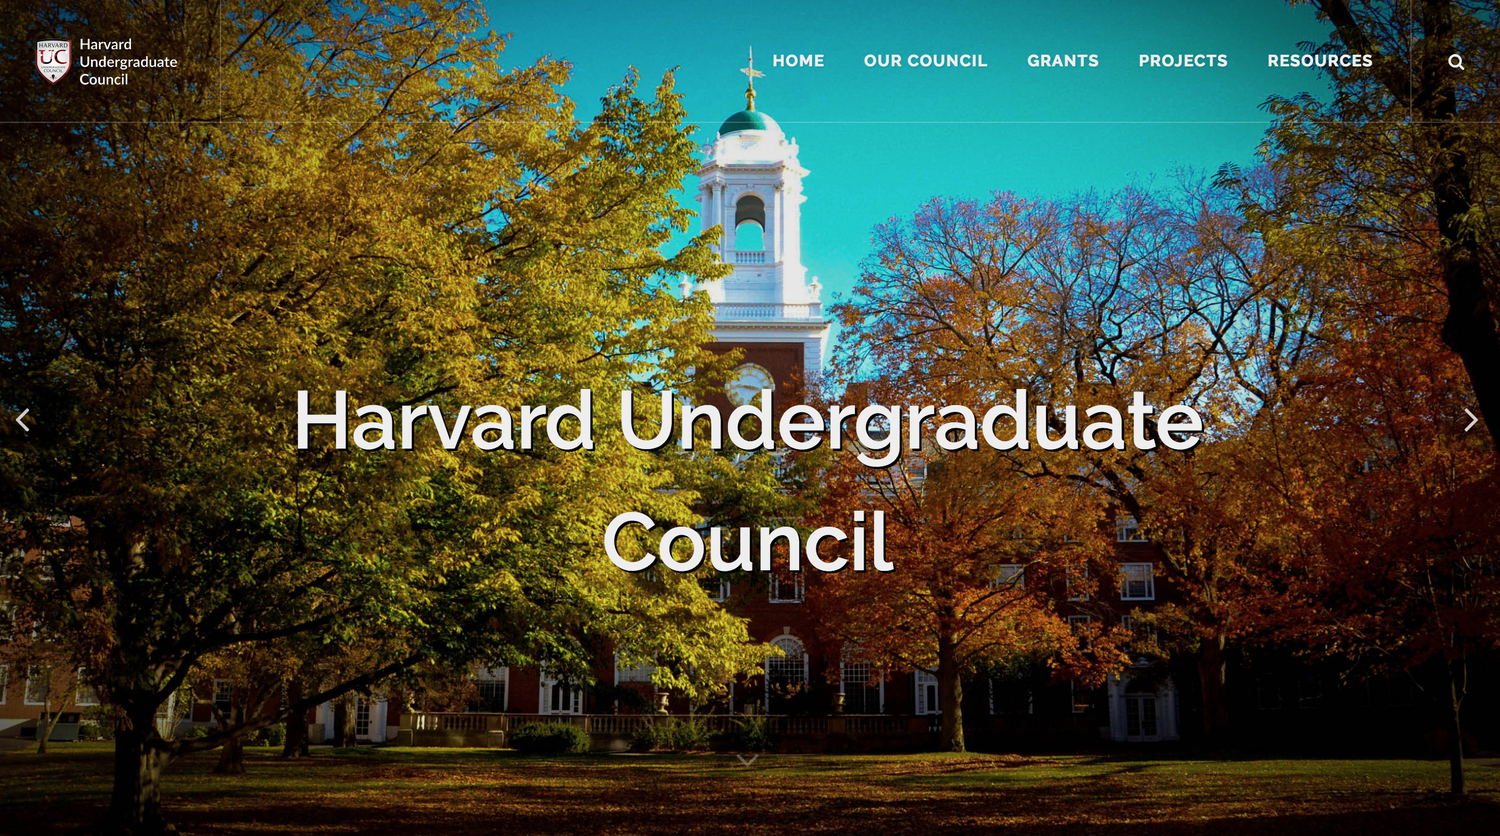 The Undergraduate Council's new website, debuted May 2018.